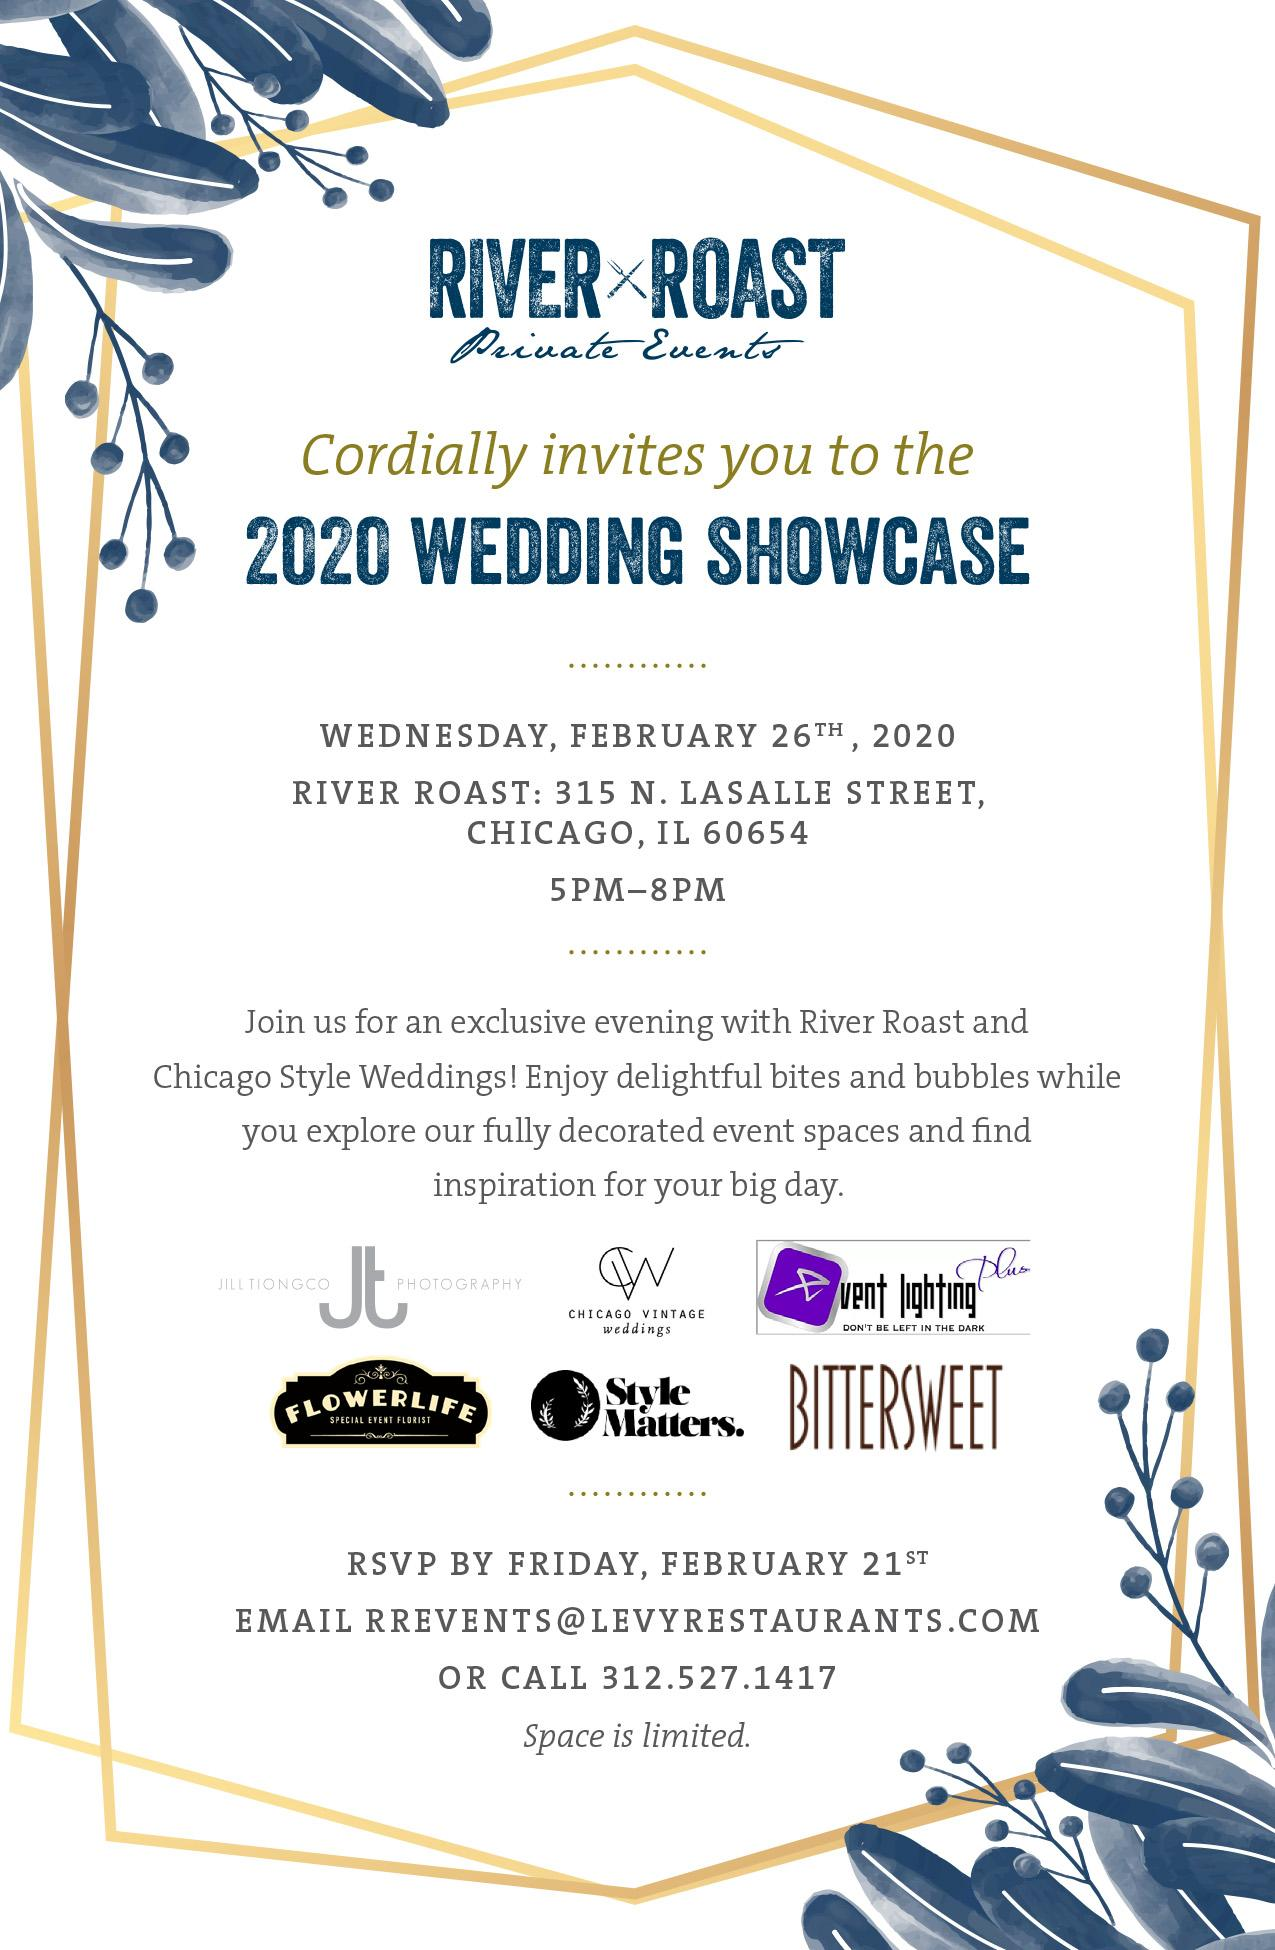 River Roast Wedding Showcase Feb 2020